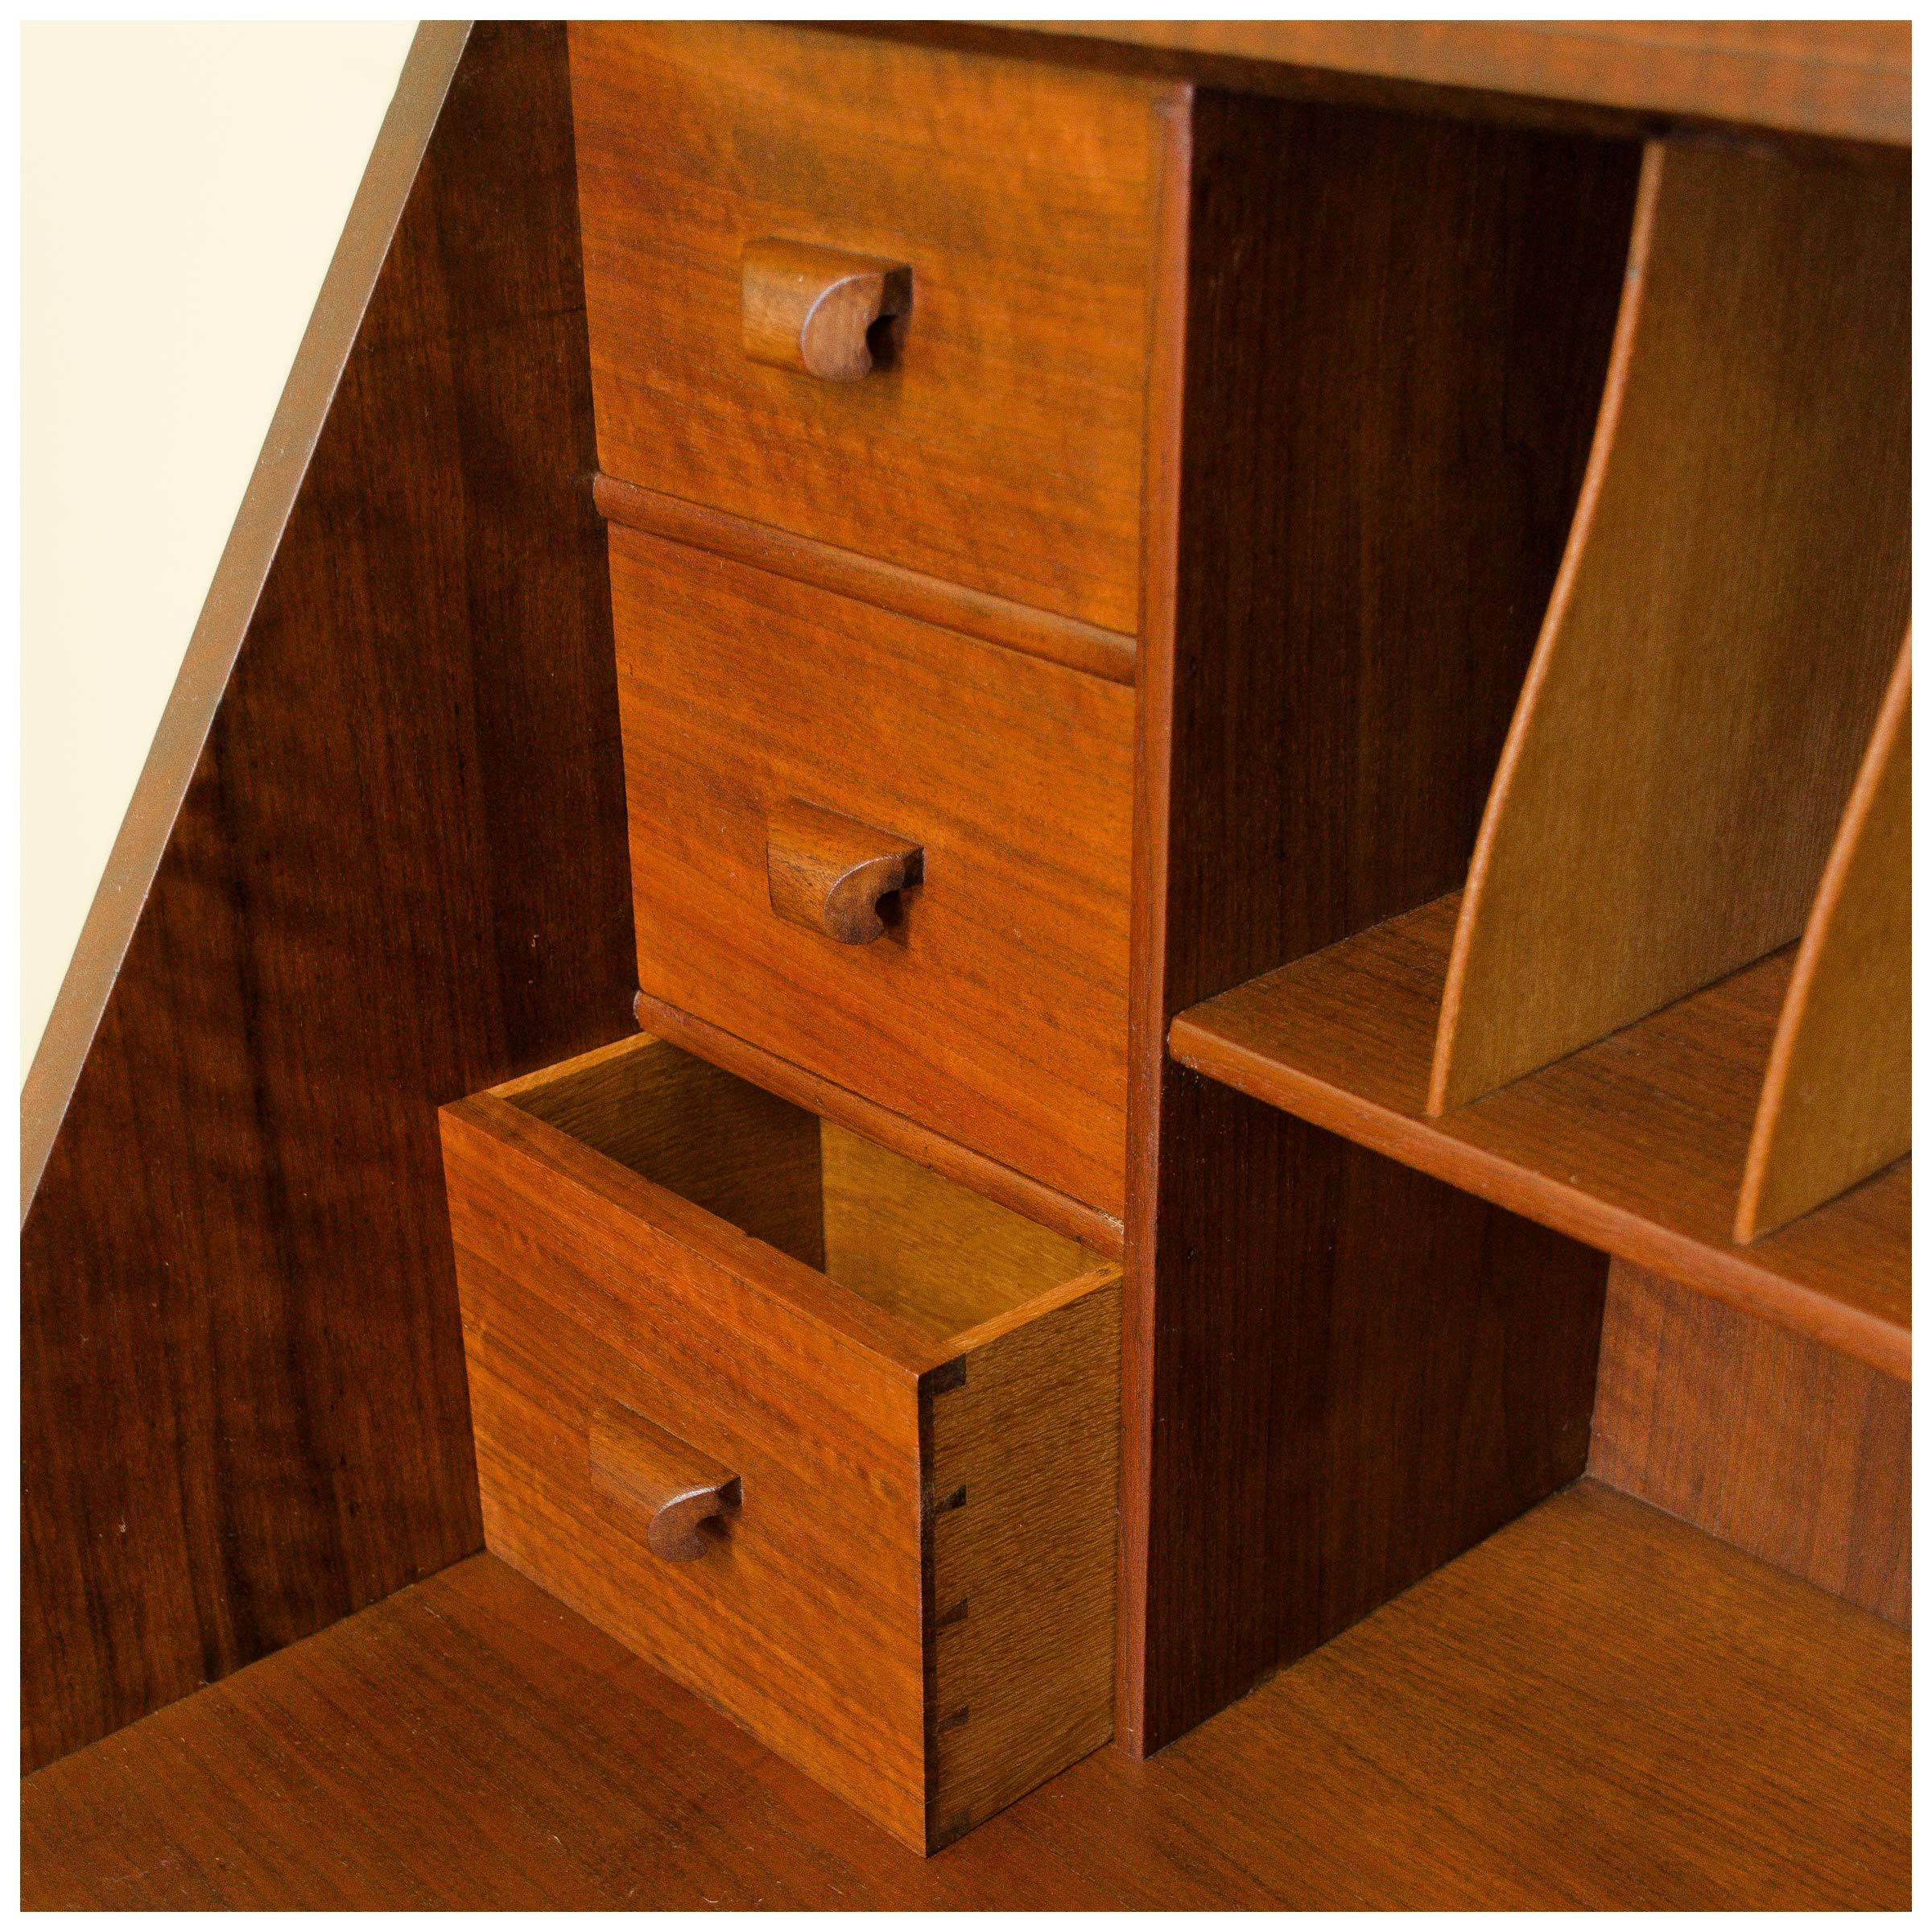 arts-crafts-walnut-bureau-by-betty-joel-token-works-b0020127m.jpg